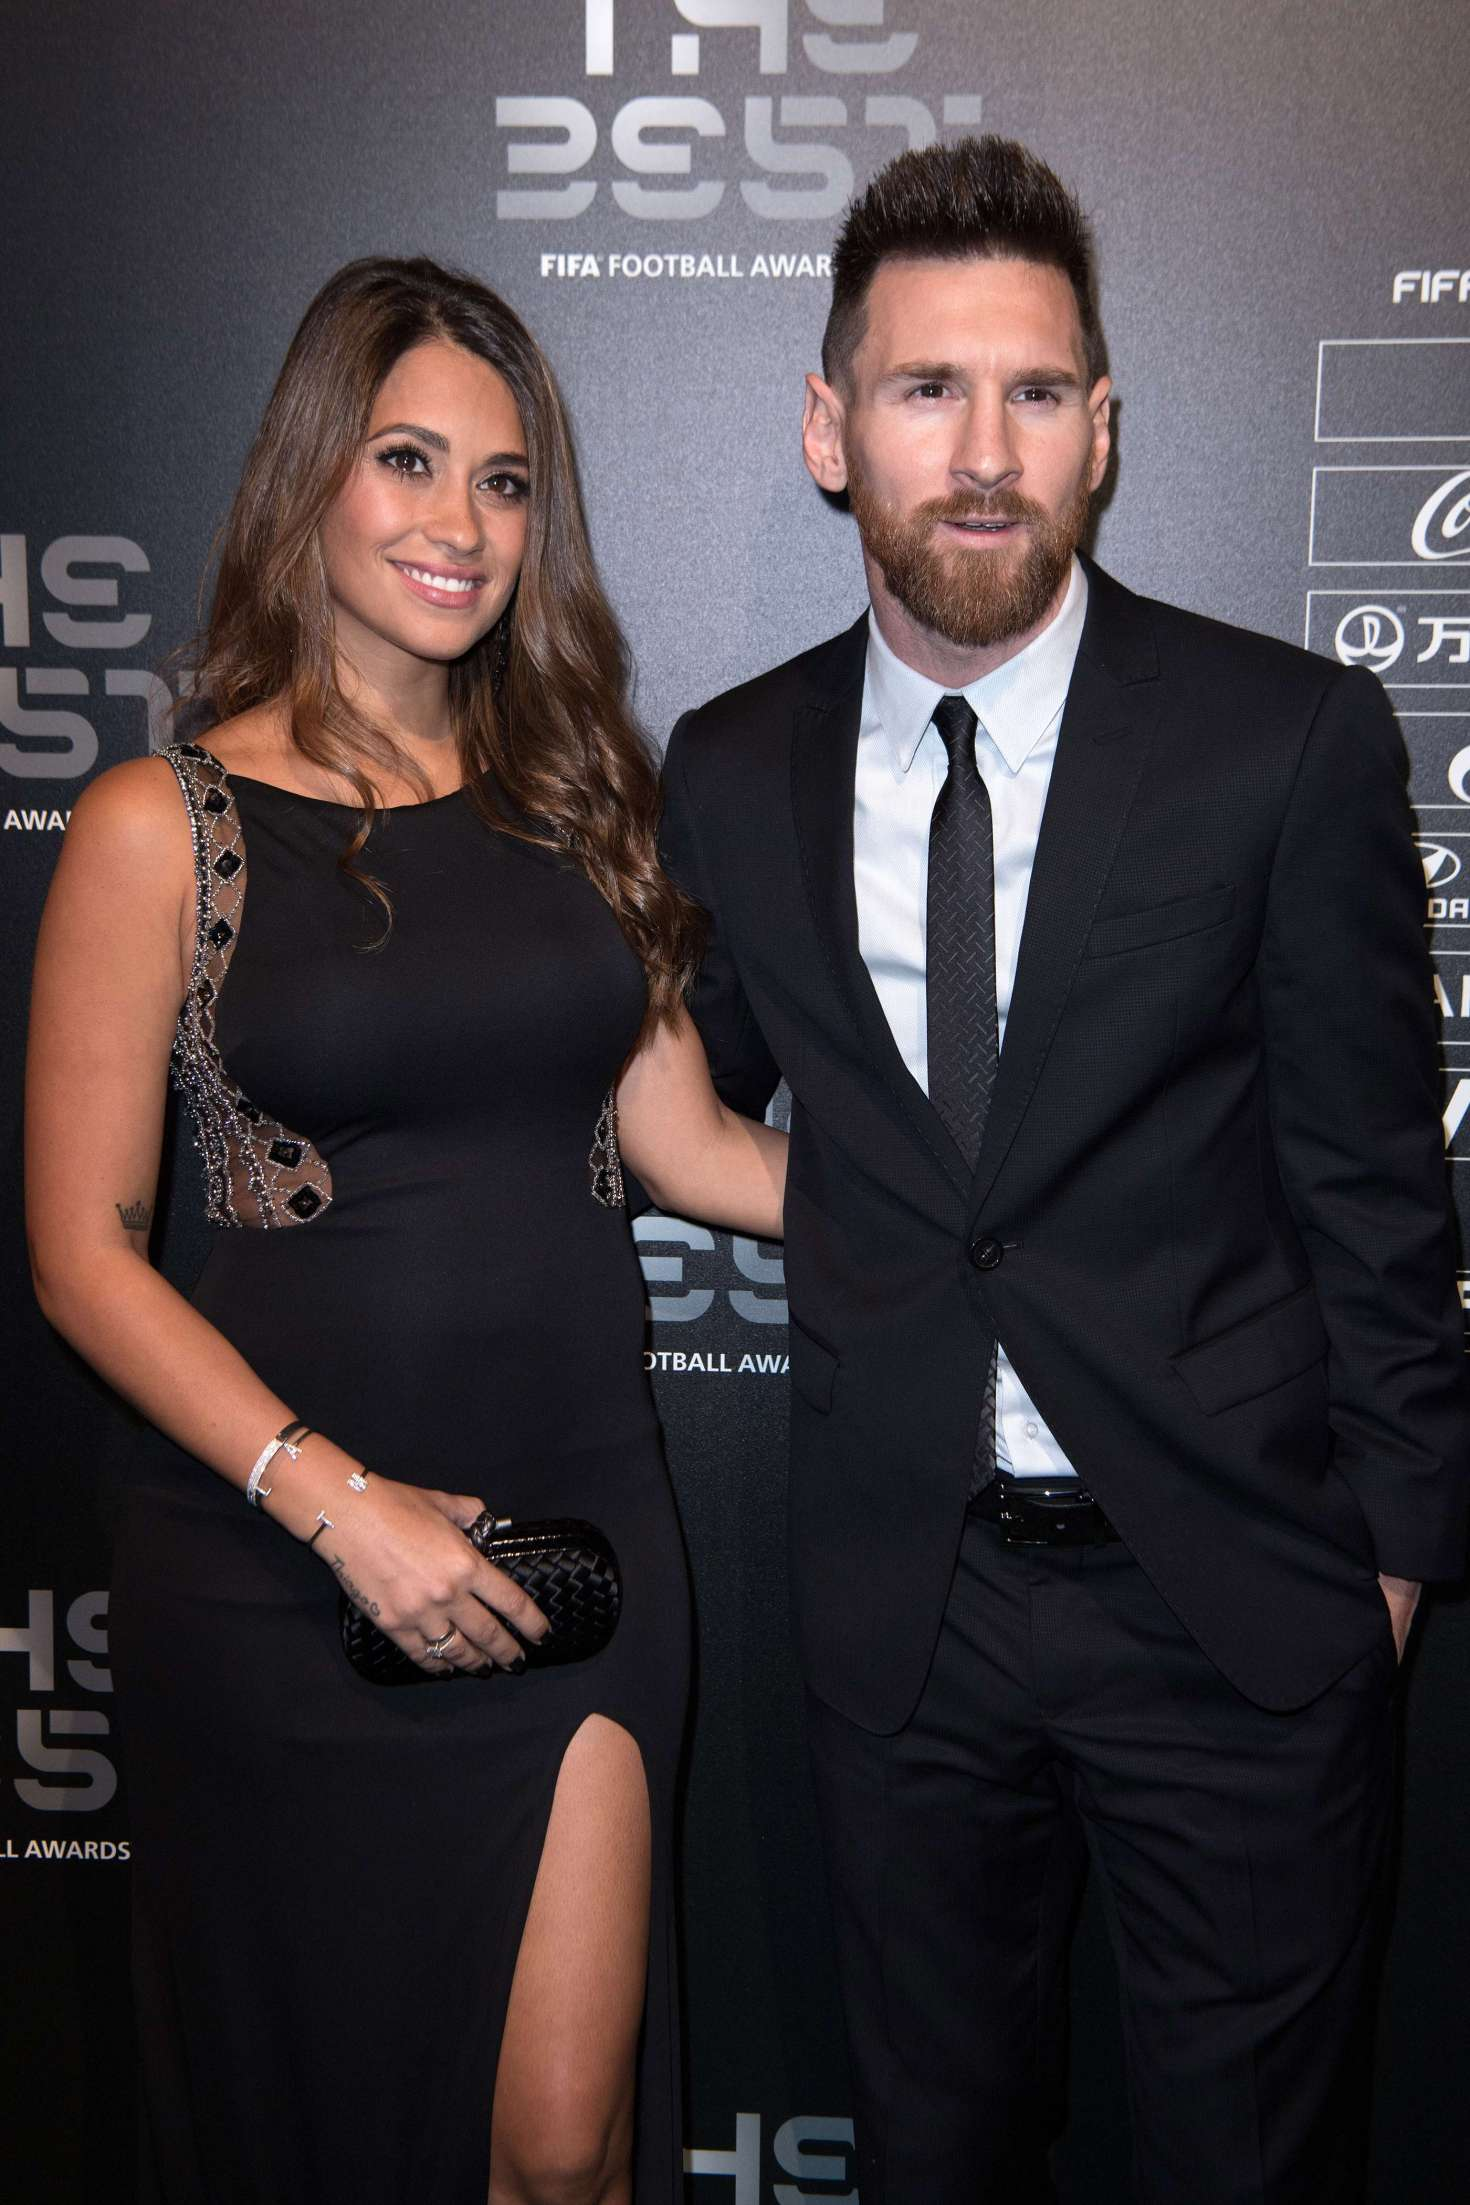 Antonella Roccuzzo - The Best FIFA Football Awards 2017 in London